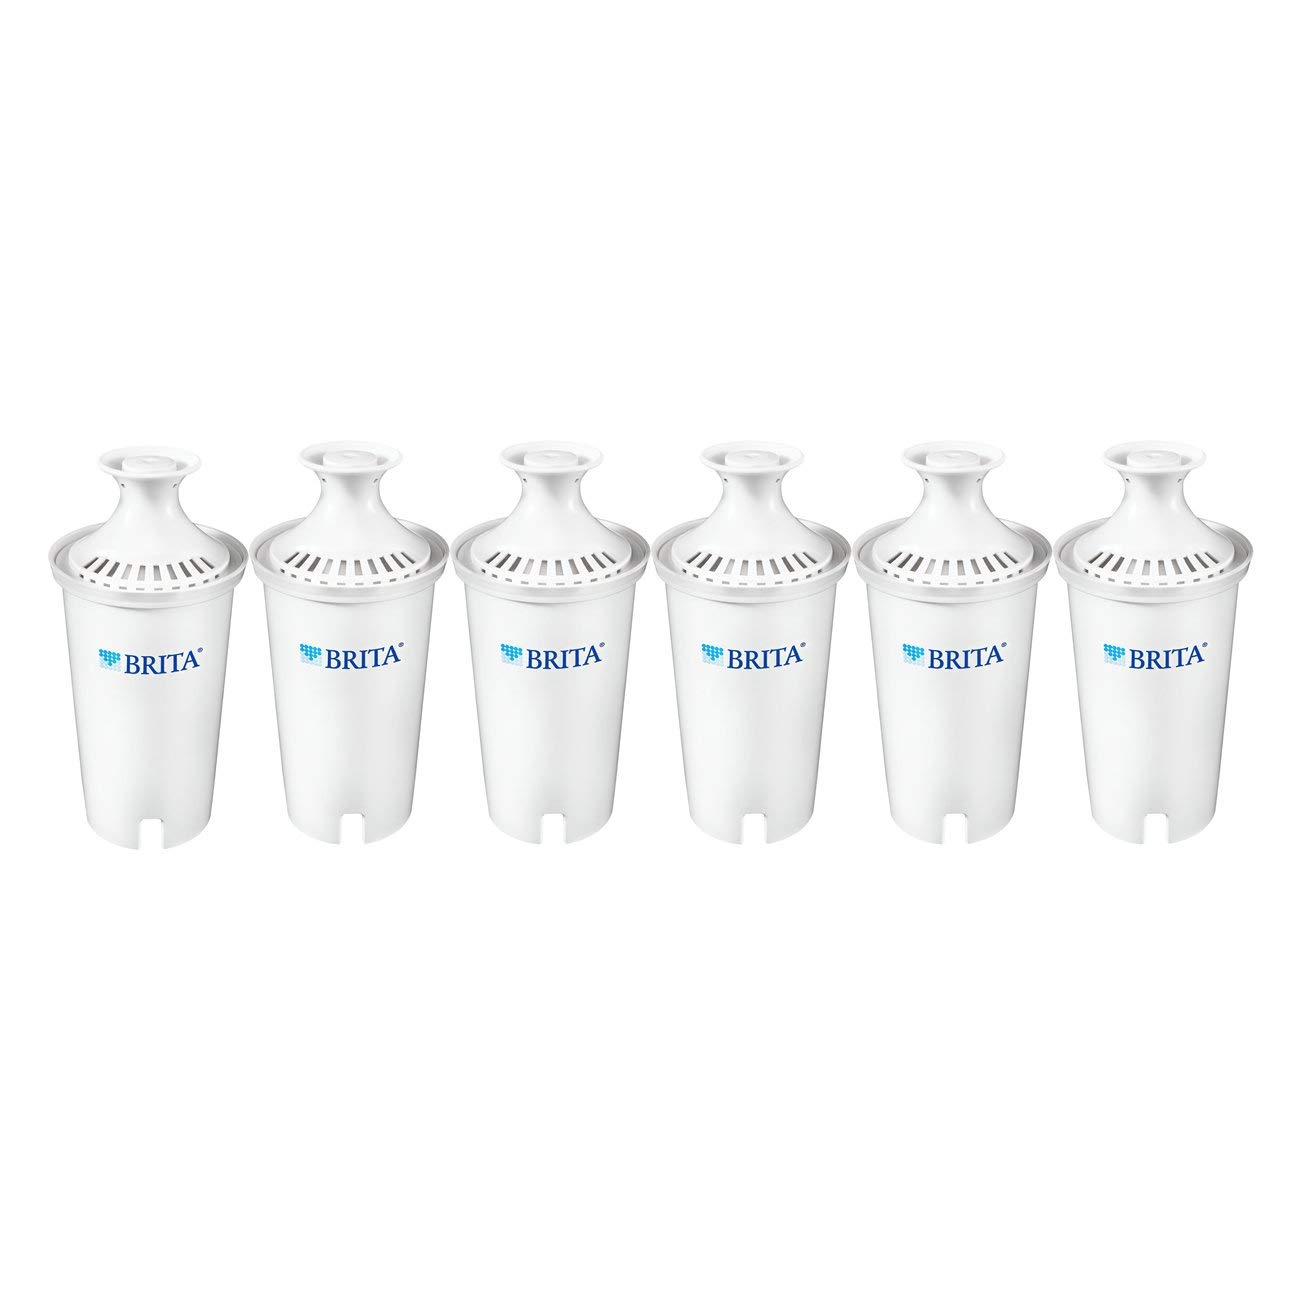 Brita Standard Water Filter, Standard Replacement Filters for Pitchers and Dispensers, BPA Free - 6 Count by Brita